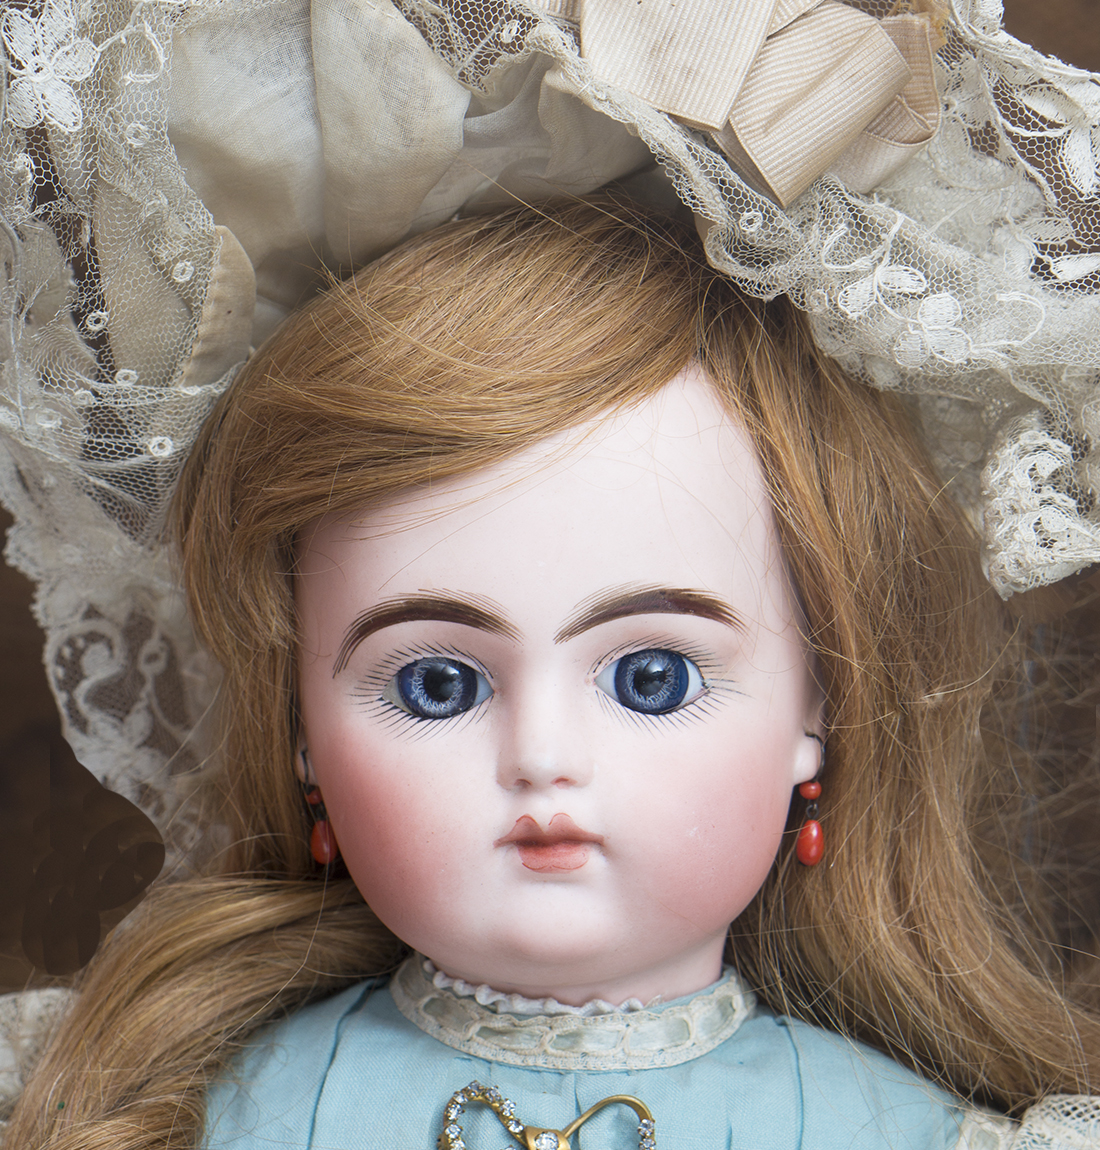 Pintel and Godchaux  Doll size 12